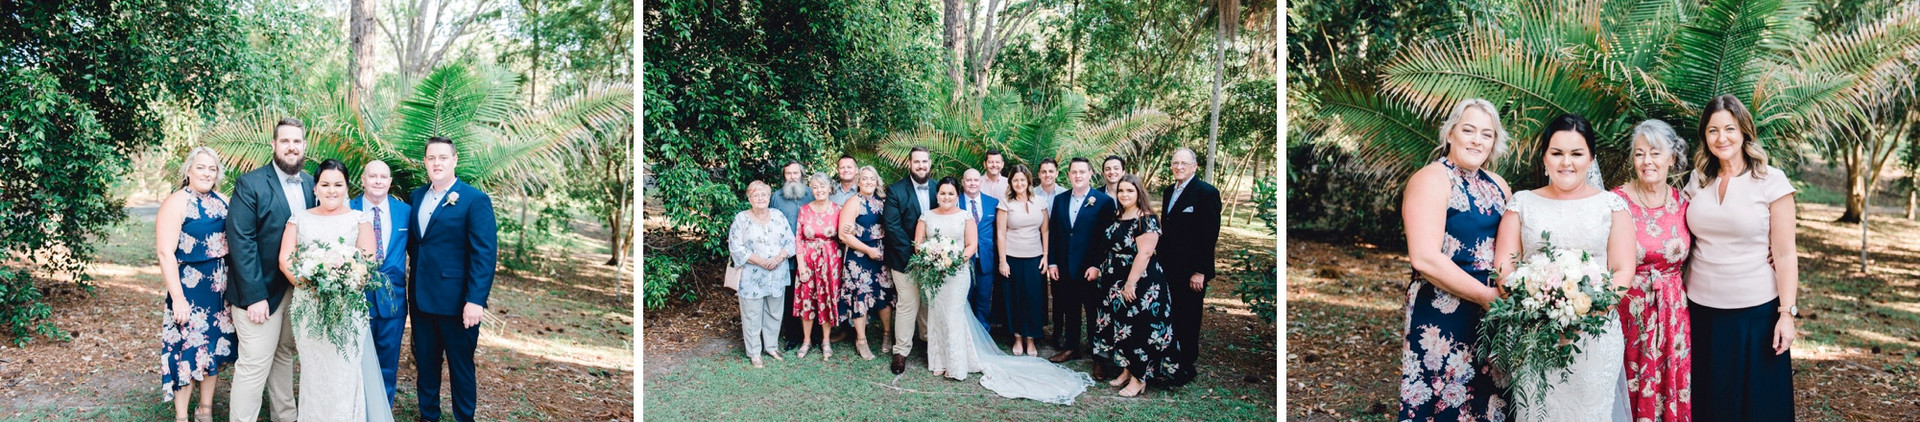 joy philippe photography, gold coast wedding photographer, gold coast photographer, Piggabeen Road, Cobaki Lakes, queensland, new south wales, qld, nsw, the abbey cobaki, gold coast wedding venue, wedding, gold coast ceremony, gold coast celebrant, bride, groom